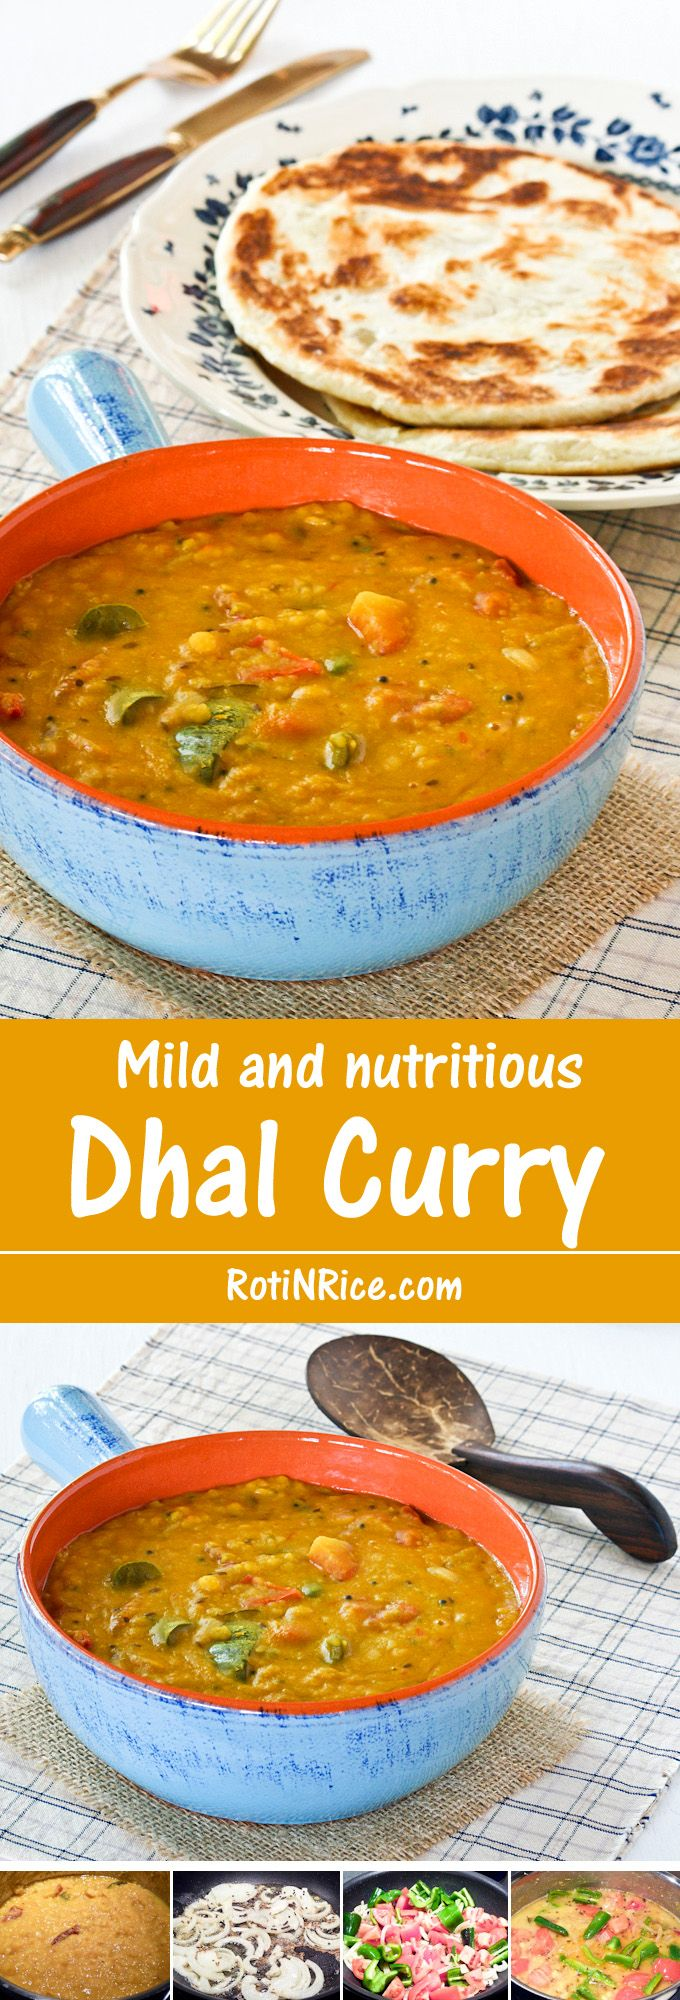 This Dhal Curry is a very mild and nutritious curry made up mainly of lentils, tomatoes, chilies, and spices. Heat level can be adjusted according to taste. | RotiNRice.com